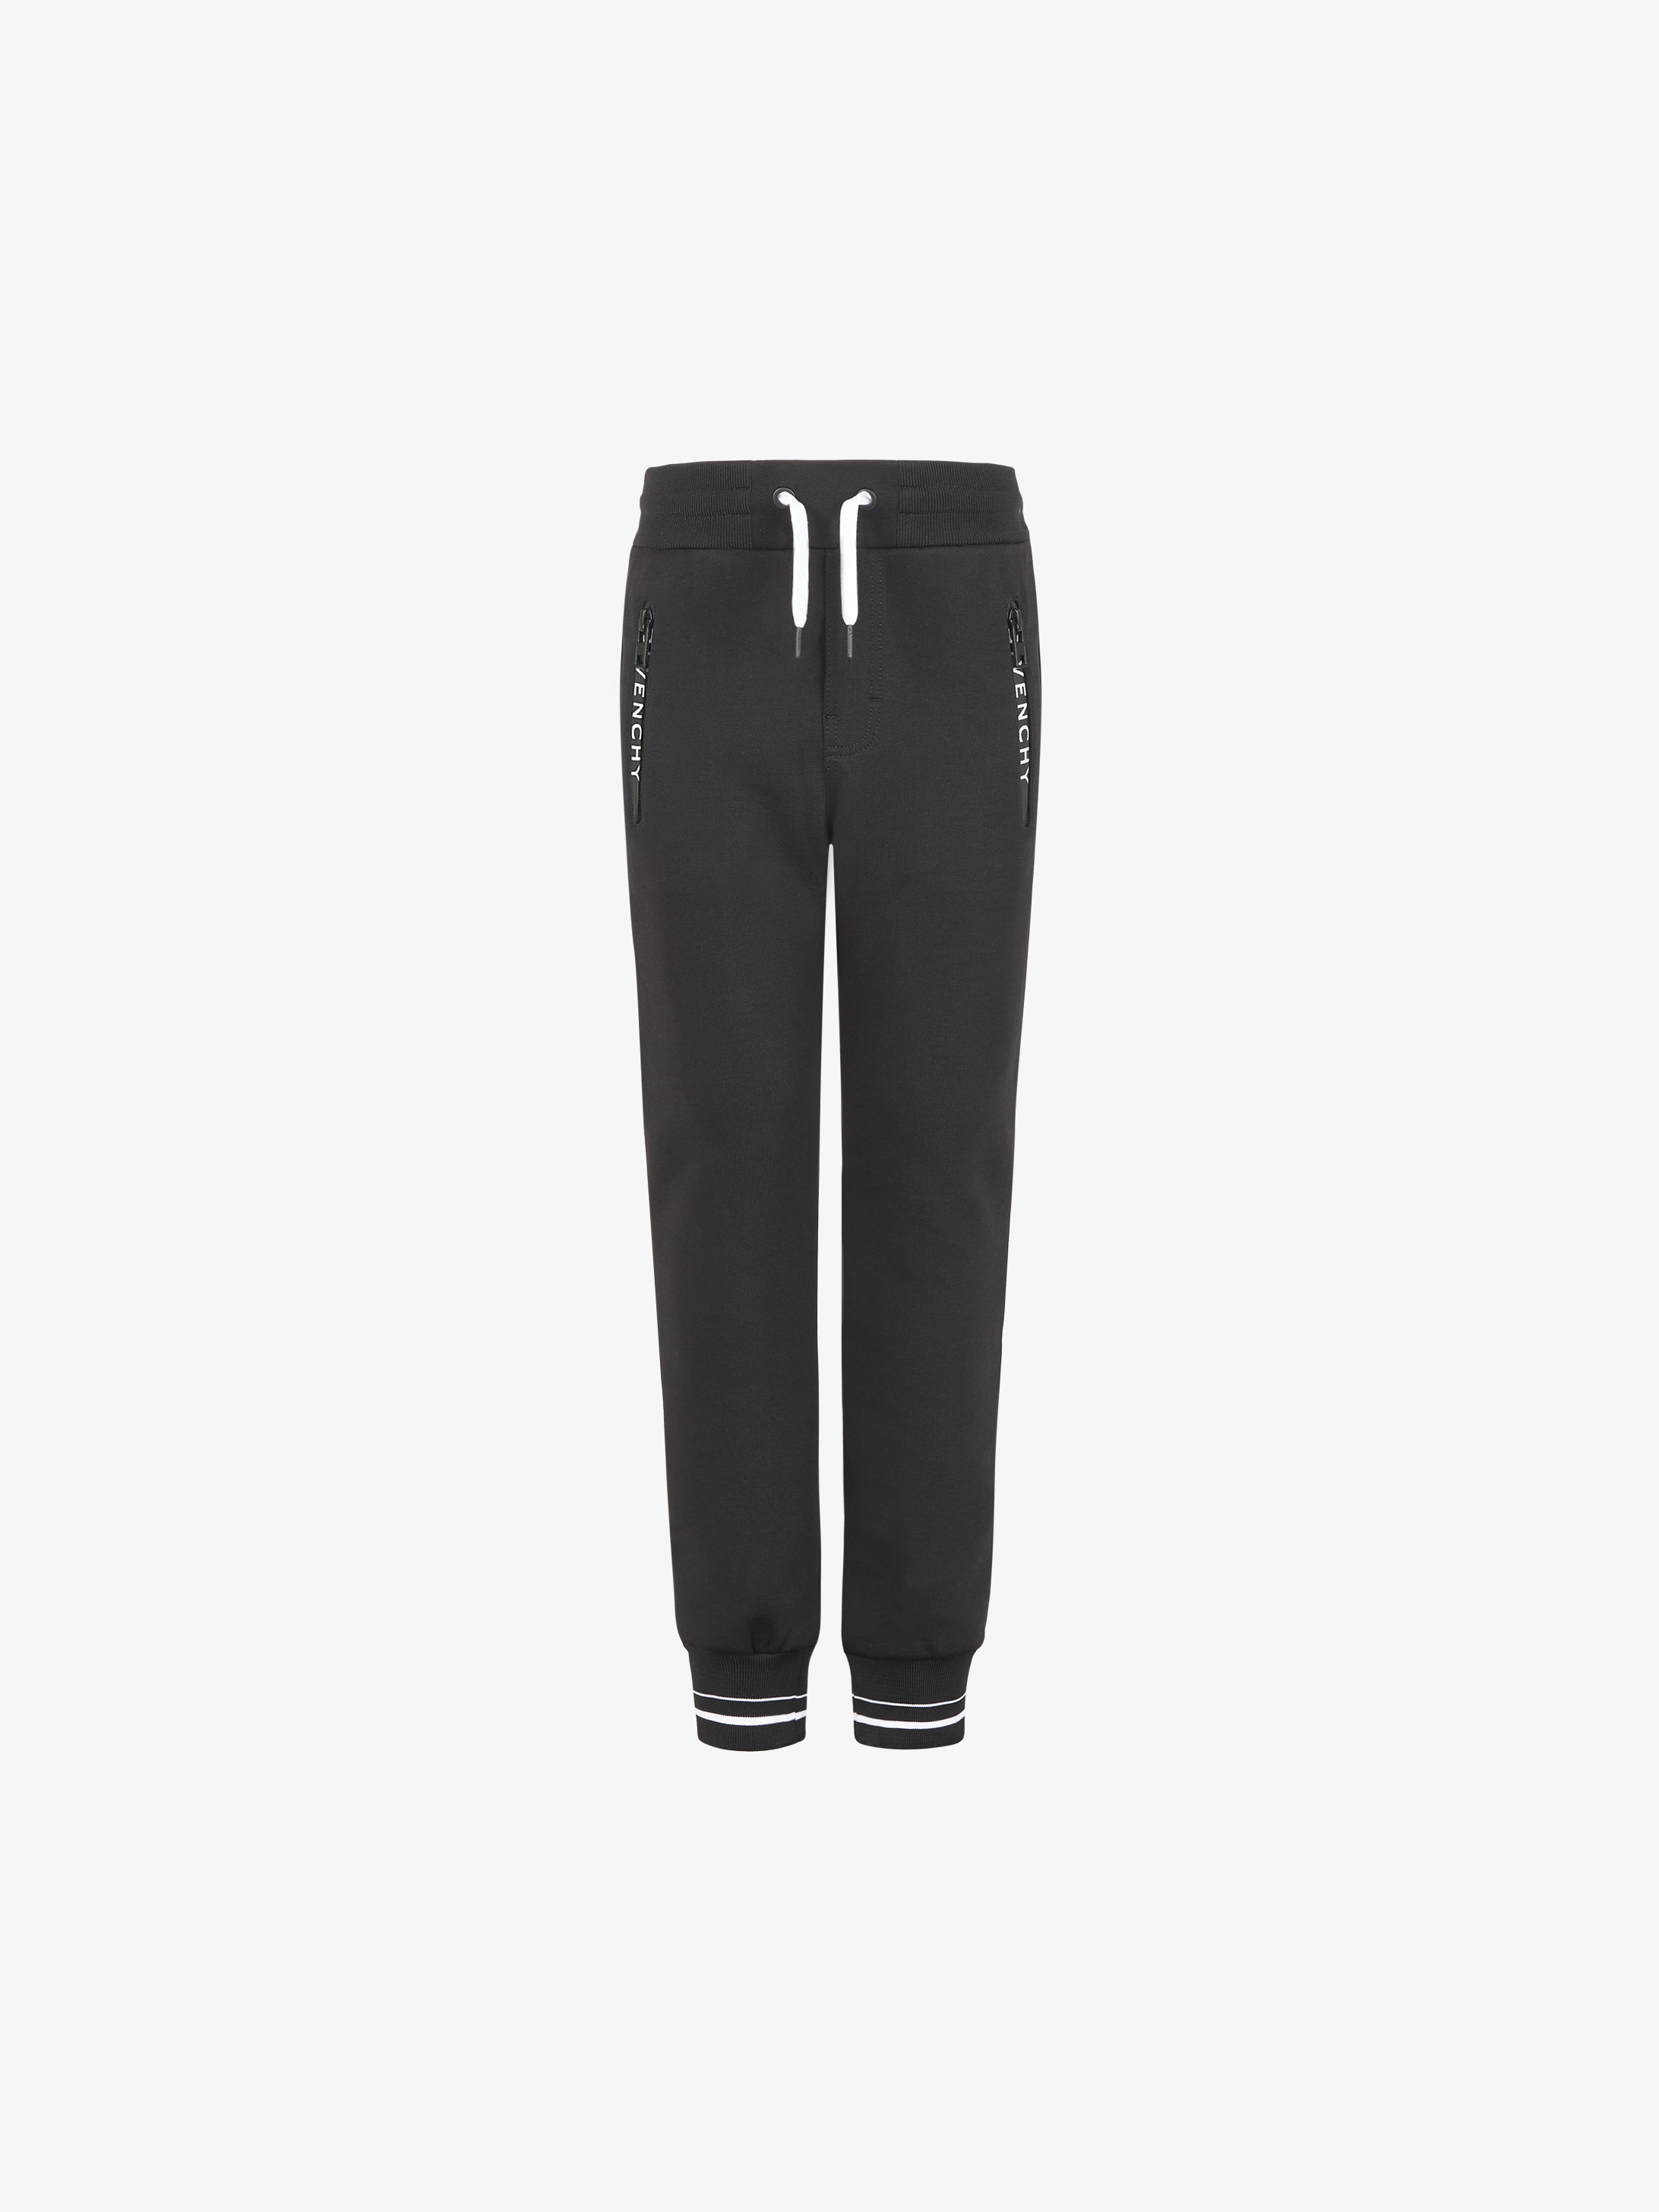 GIVENCHY contrasted multipockets jogger pants